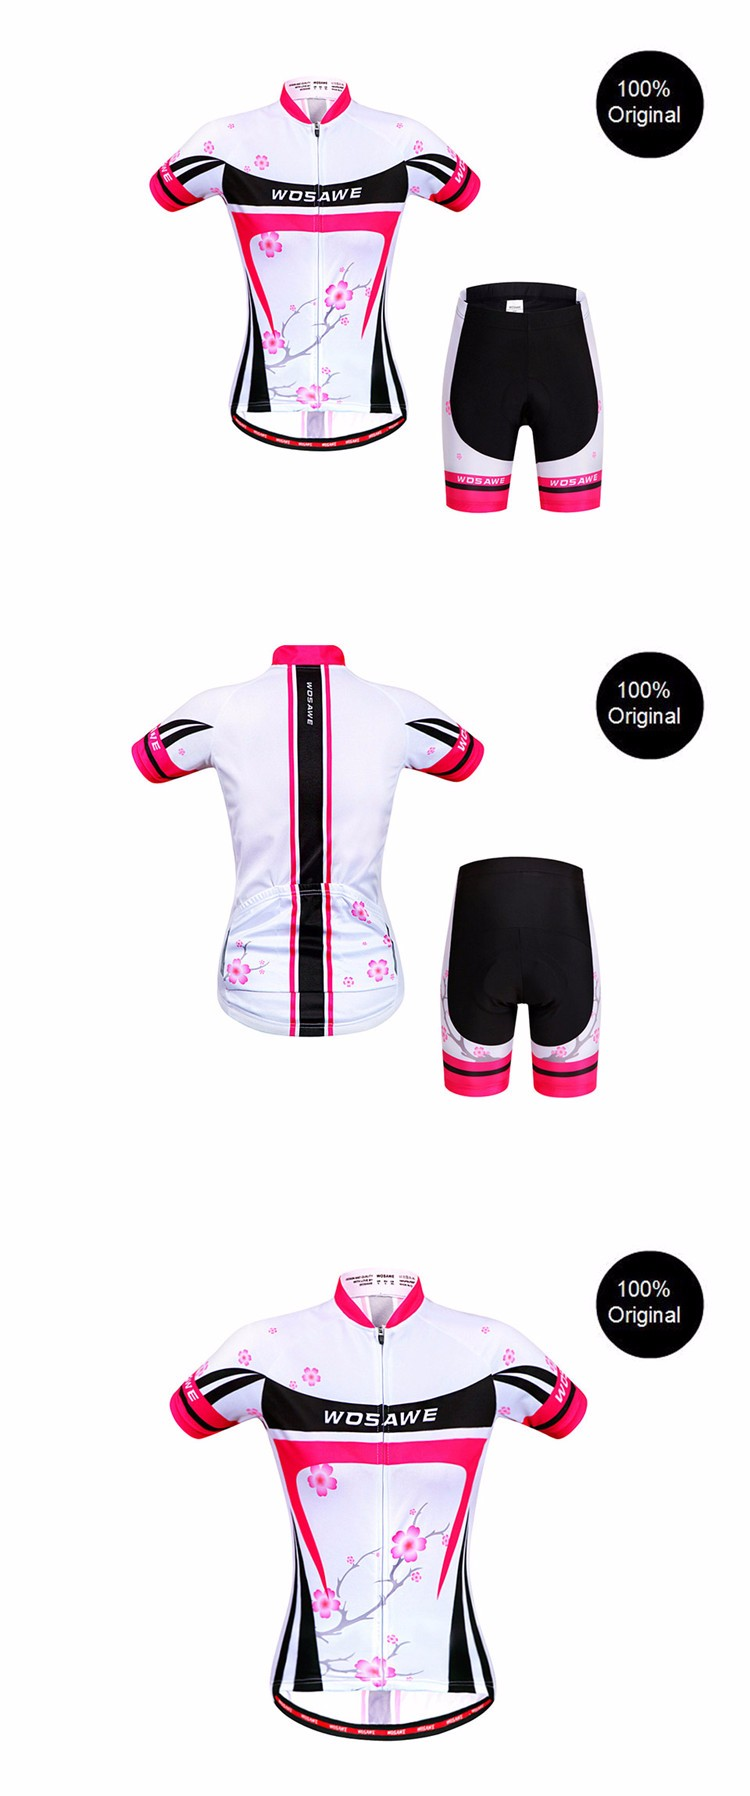 New Women Cycling Sets Summer Custom Special Top Quality Short Sleeve Jersey Gel Pad Best Qualitywomen cycling Clothes QXDT18 JJ